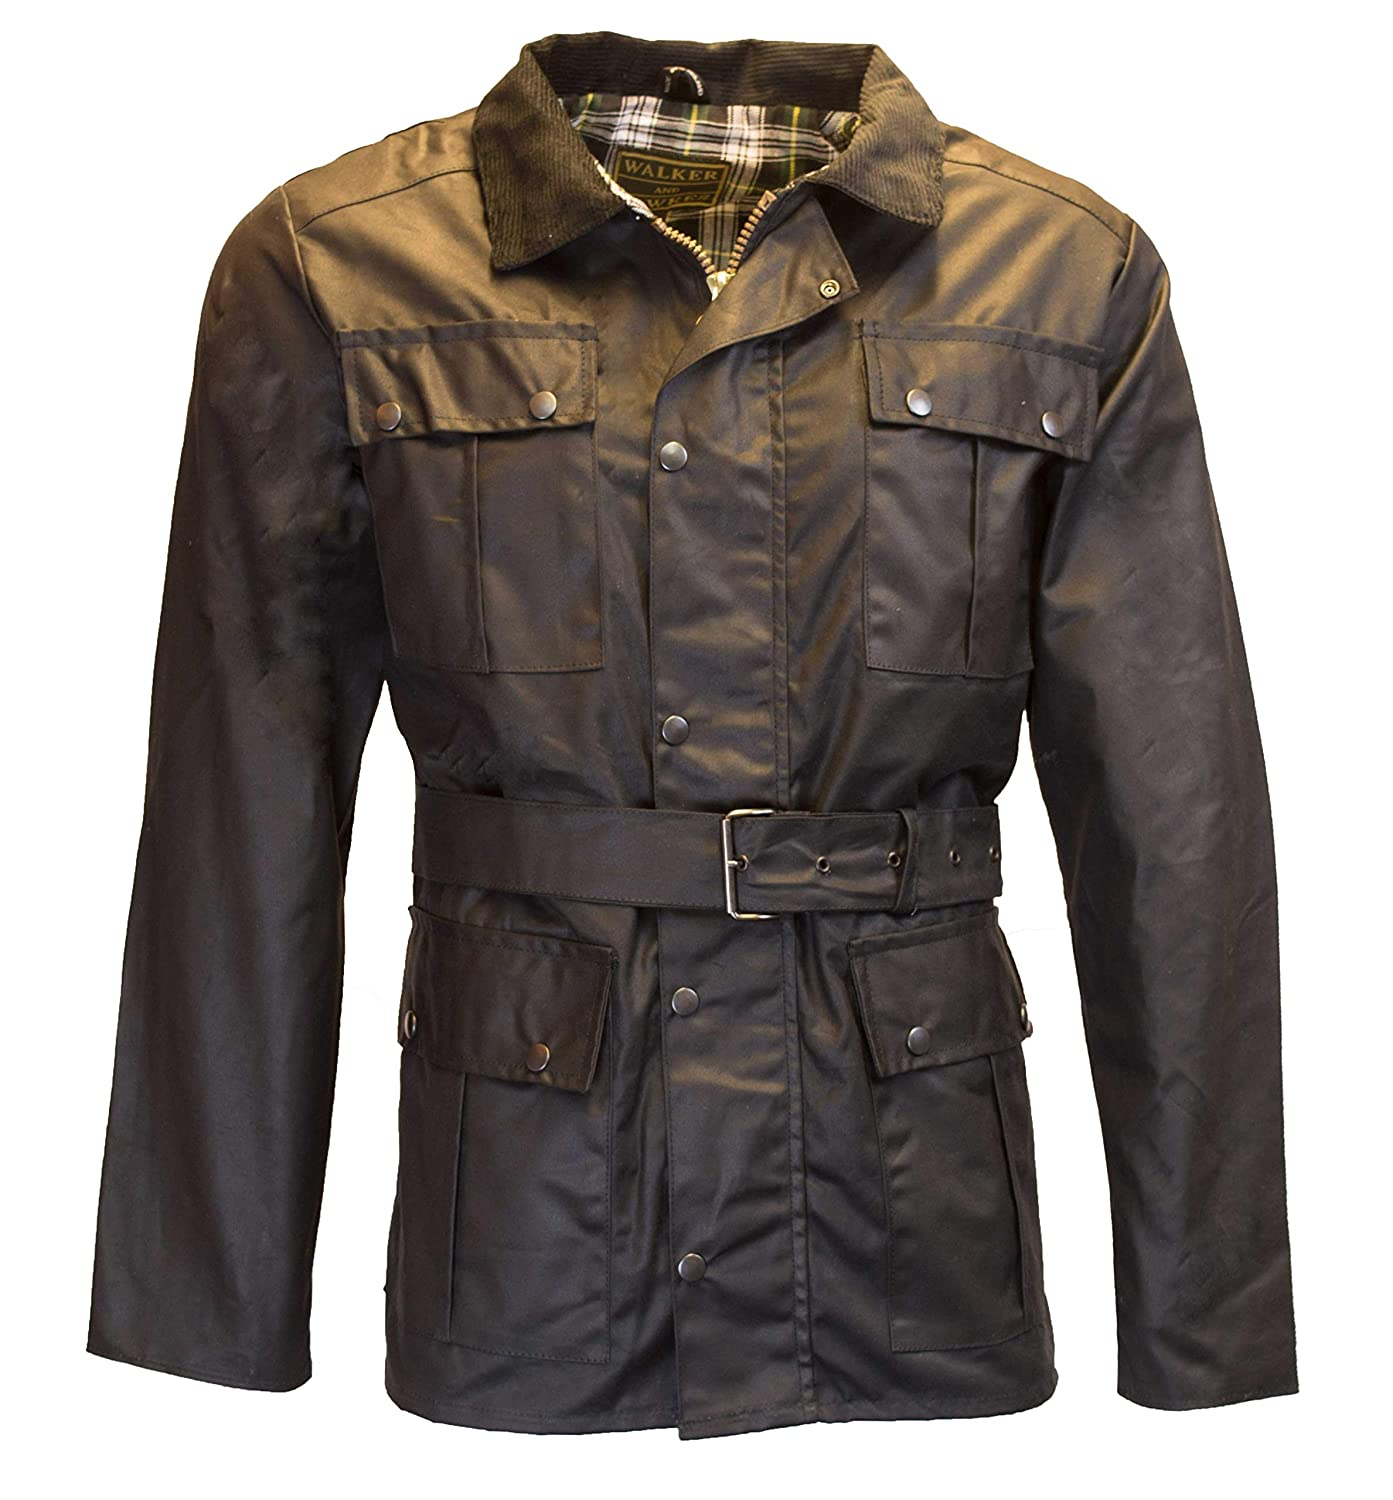 Retro Clothing for Men | Vintage Men's Fashion Walker and Hawkes Mens Belted Wax 4 Pocket Motorcycle Waterproof Jacket $101.92 AT vintagedancer.com